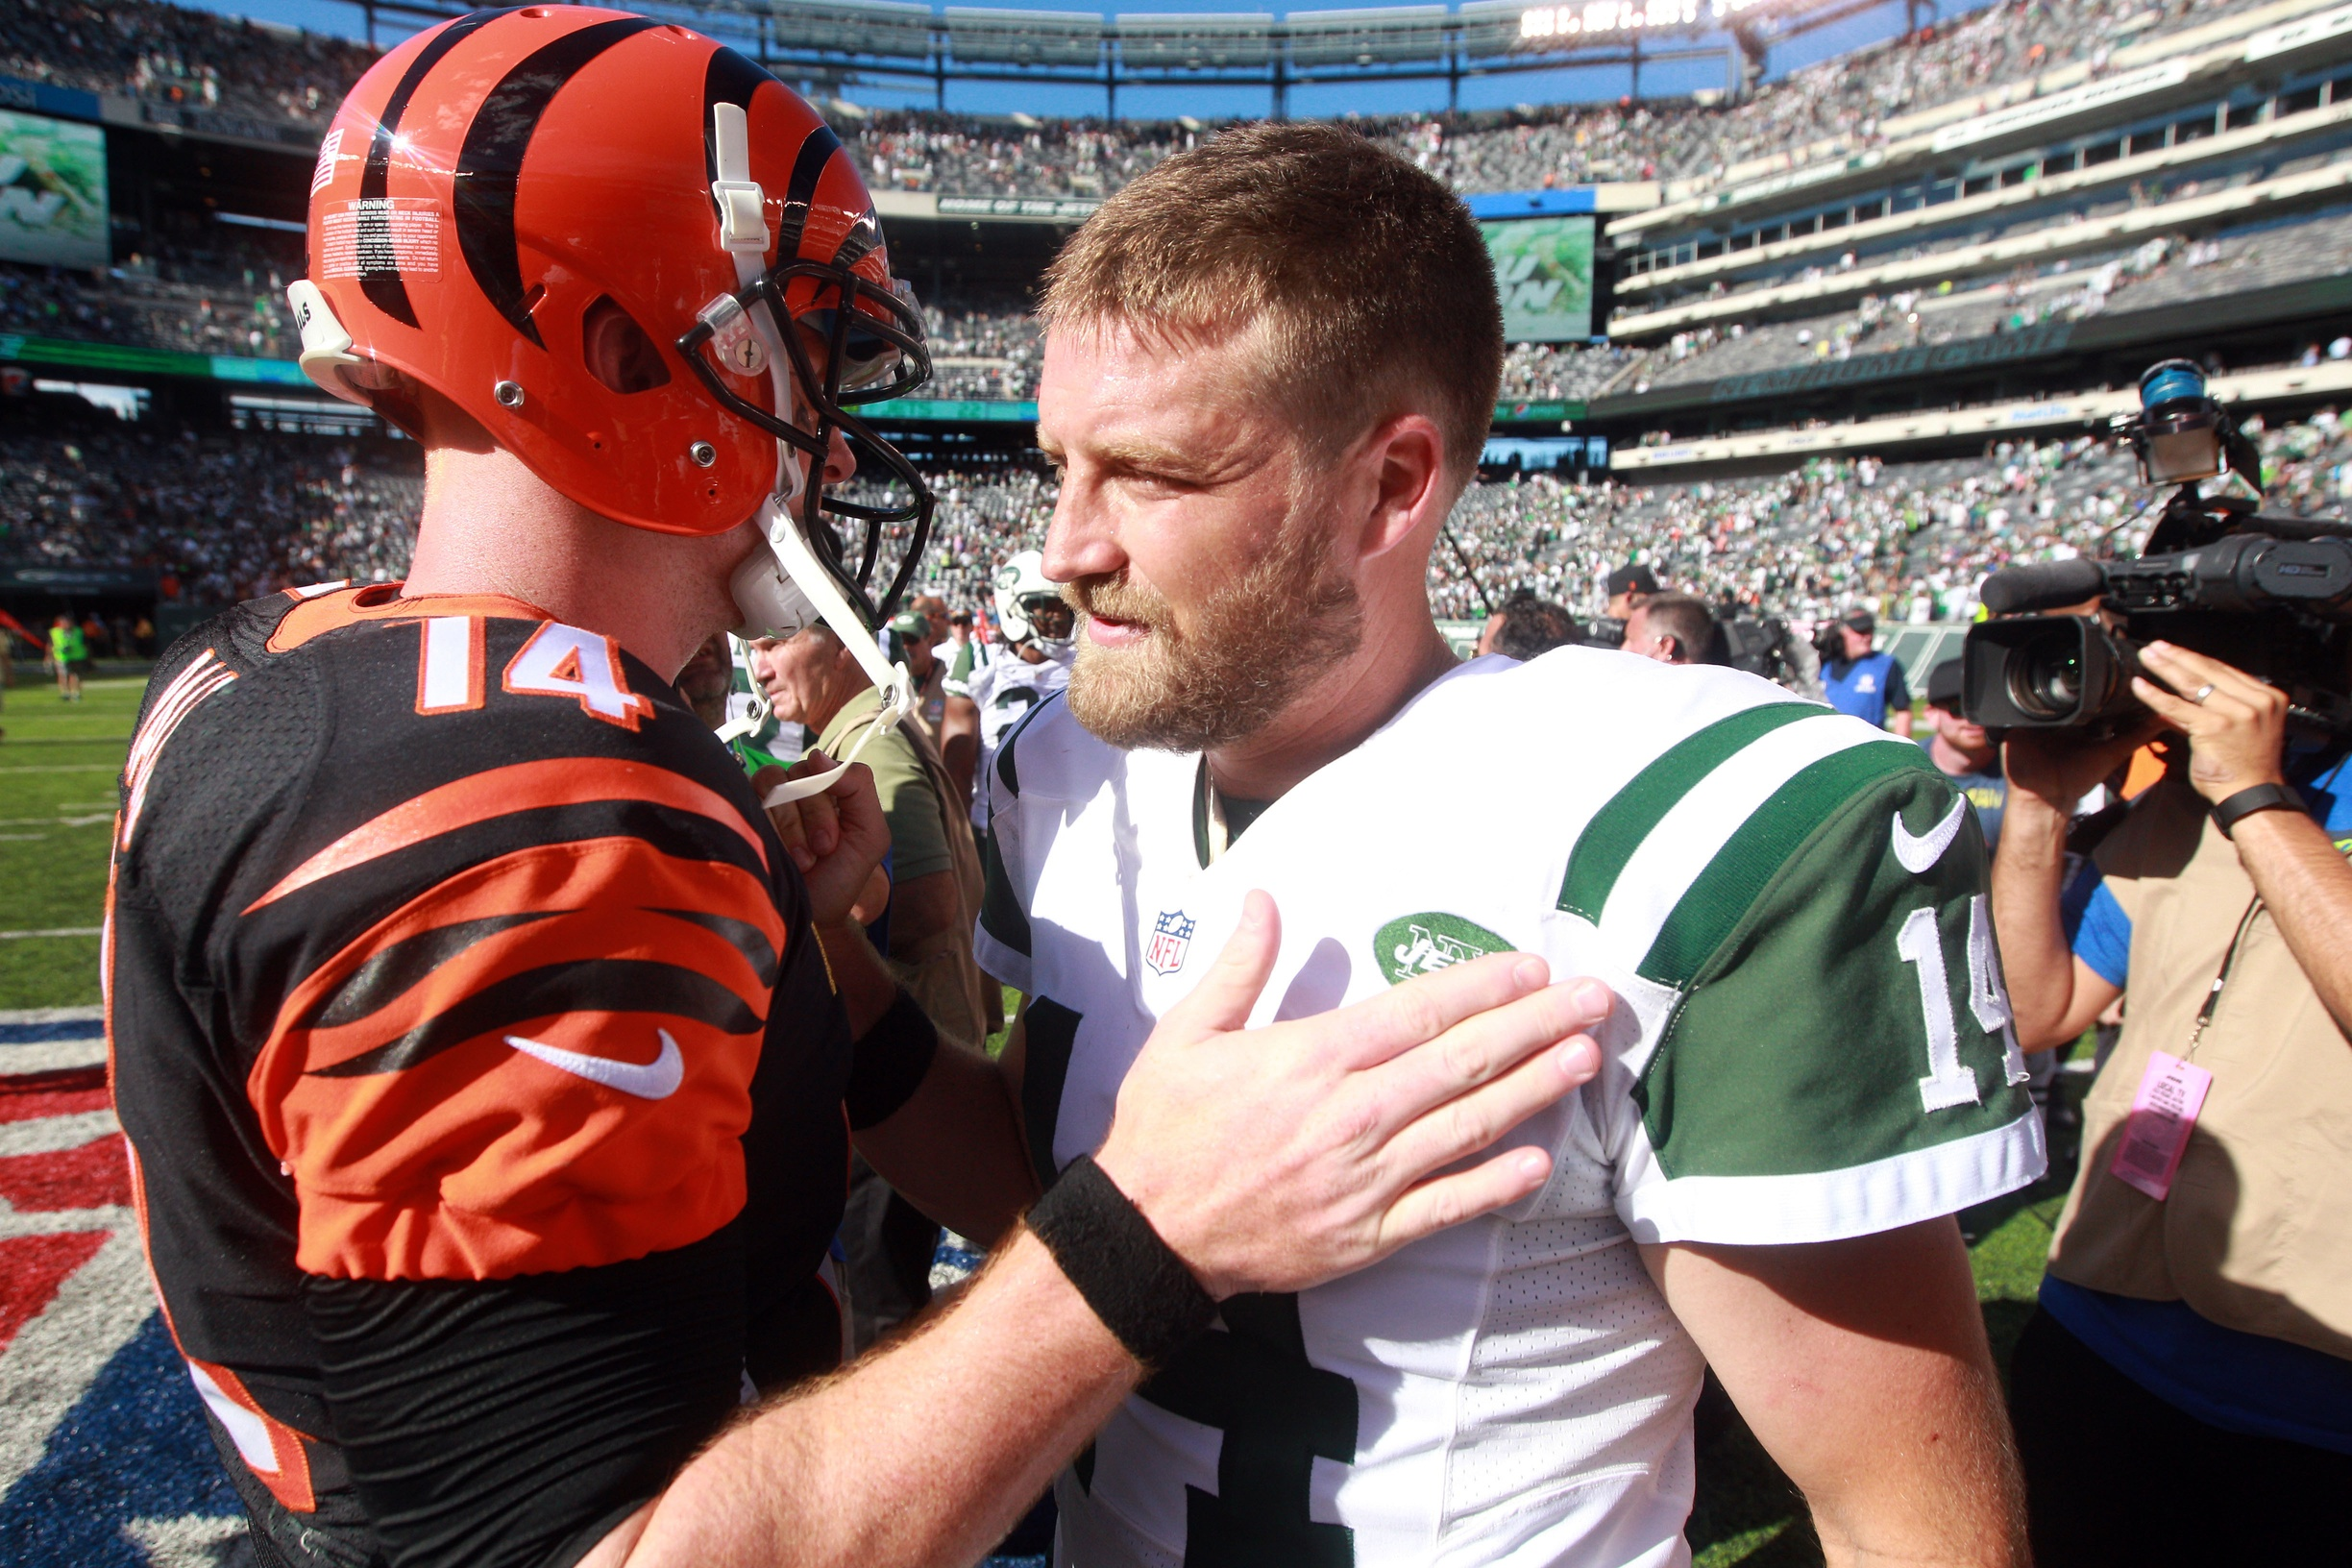 Jets Lose to Bengals; Post Game Thoughts